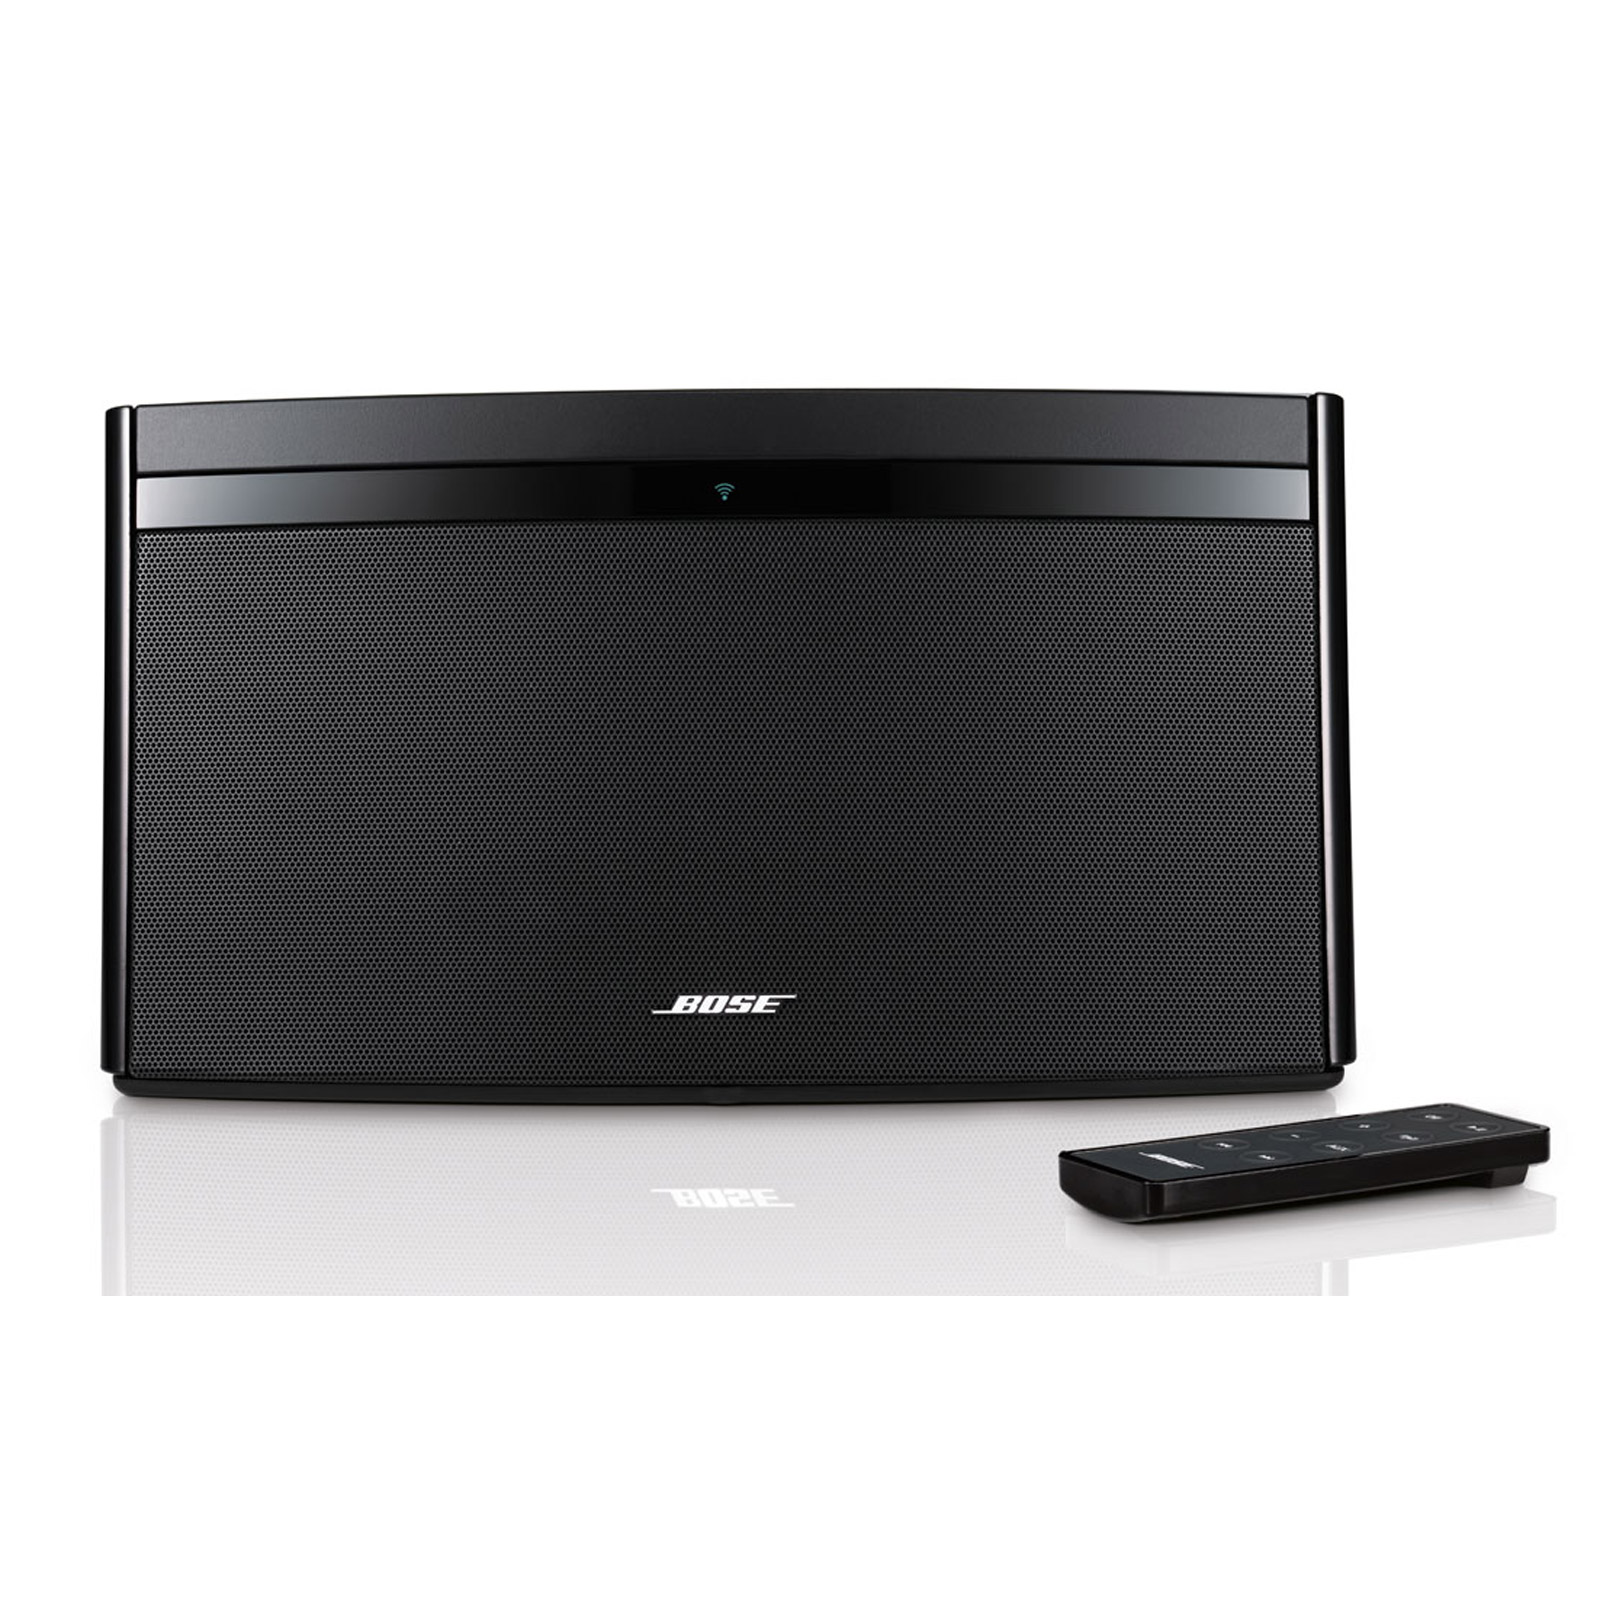 bose soundlink air dock enceinte bluetooth bose sur. Black Bedroom Furniture Sets. Home Design Ideas